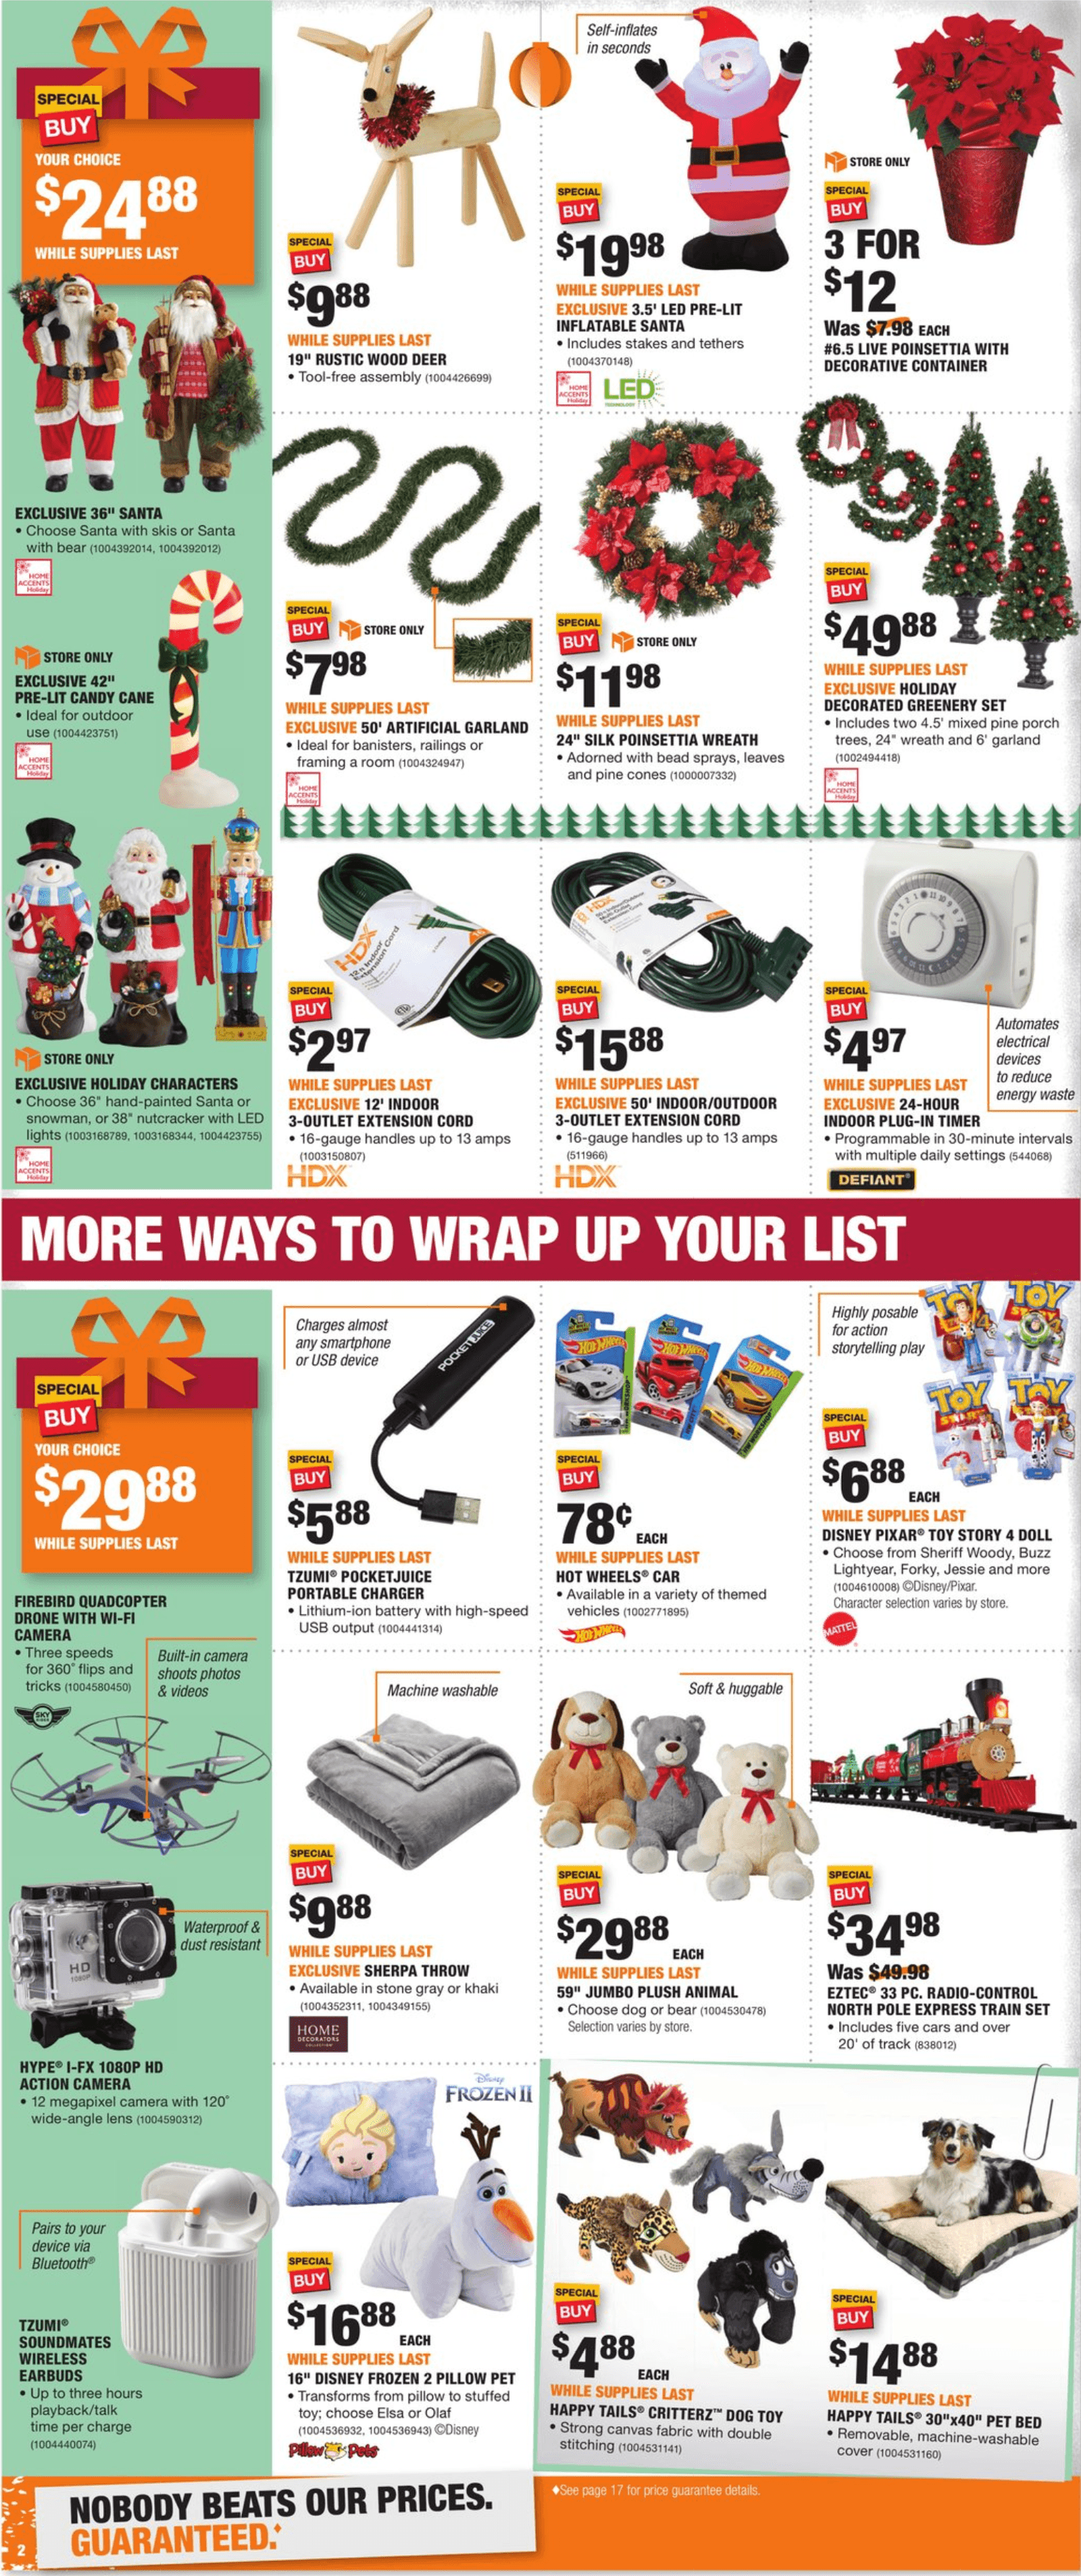 Home Depot Black Friday 2019 Page 2